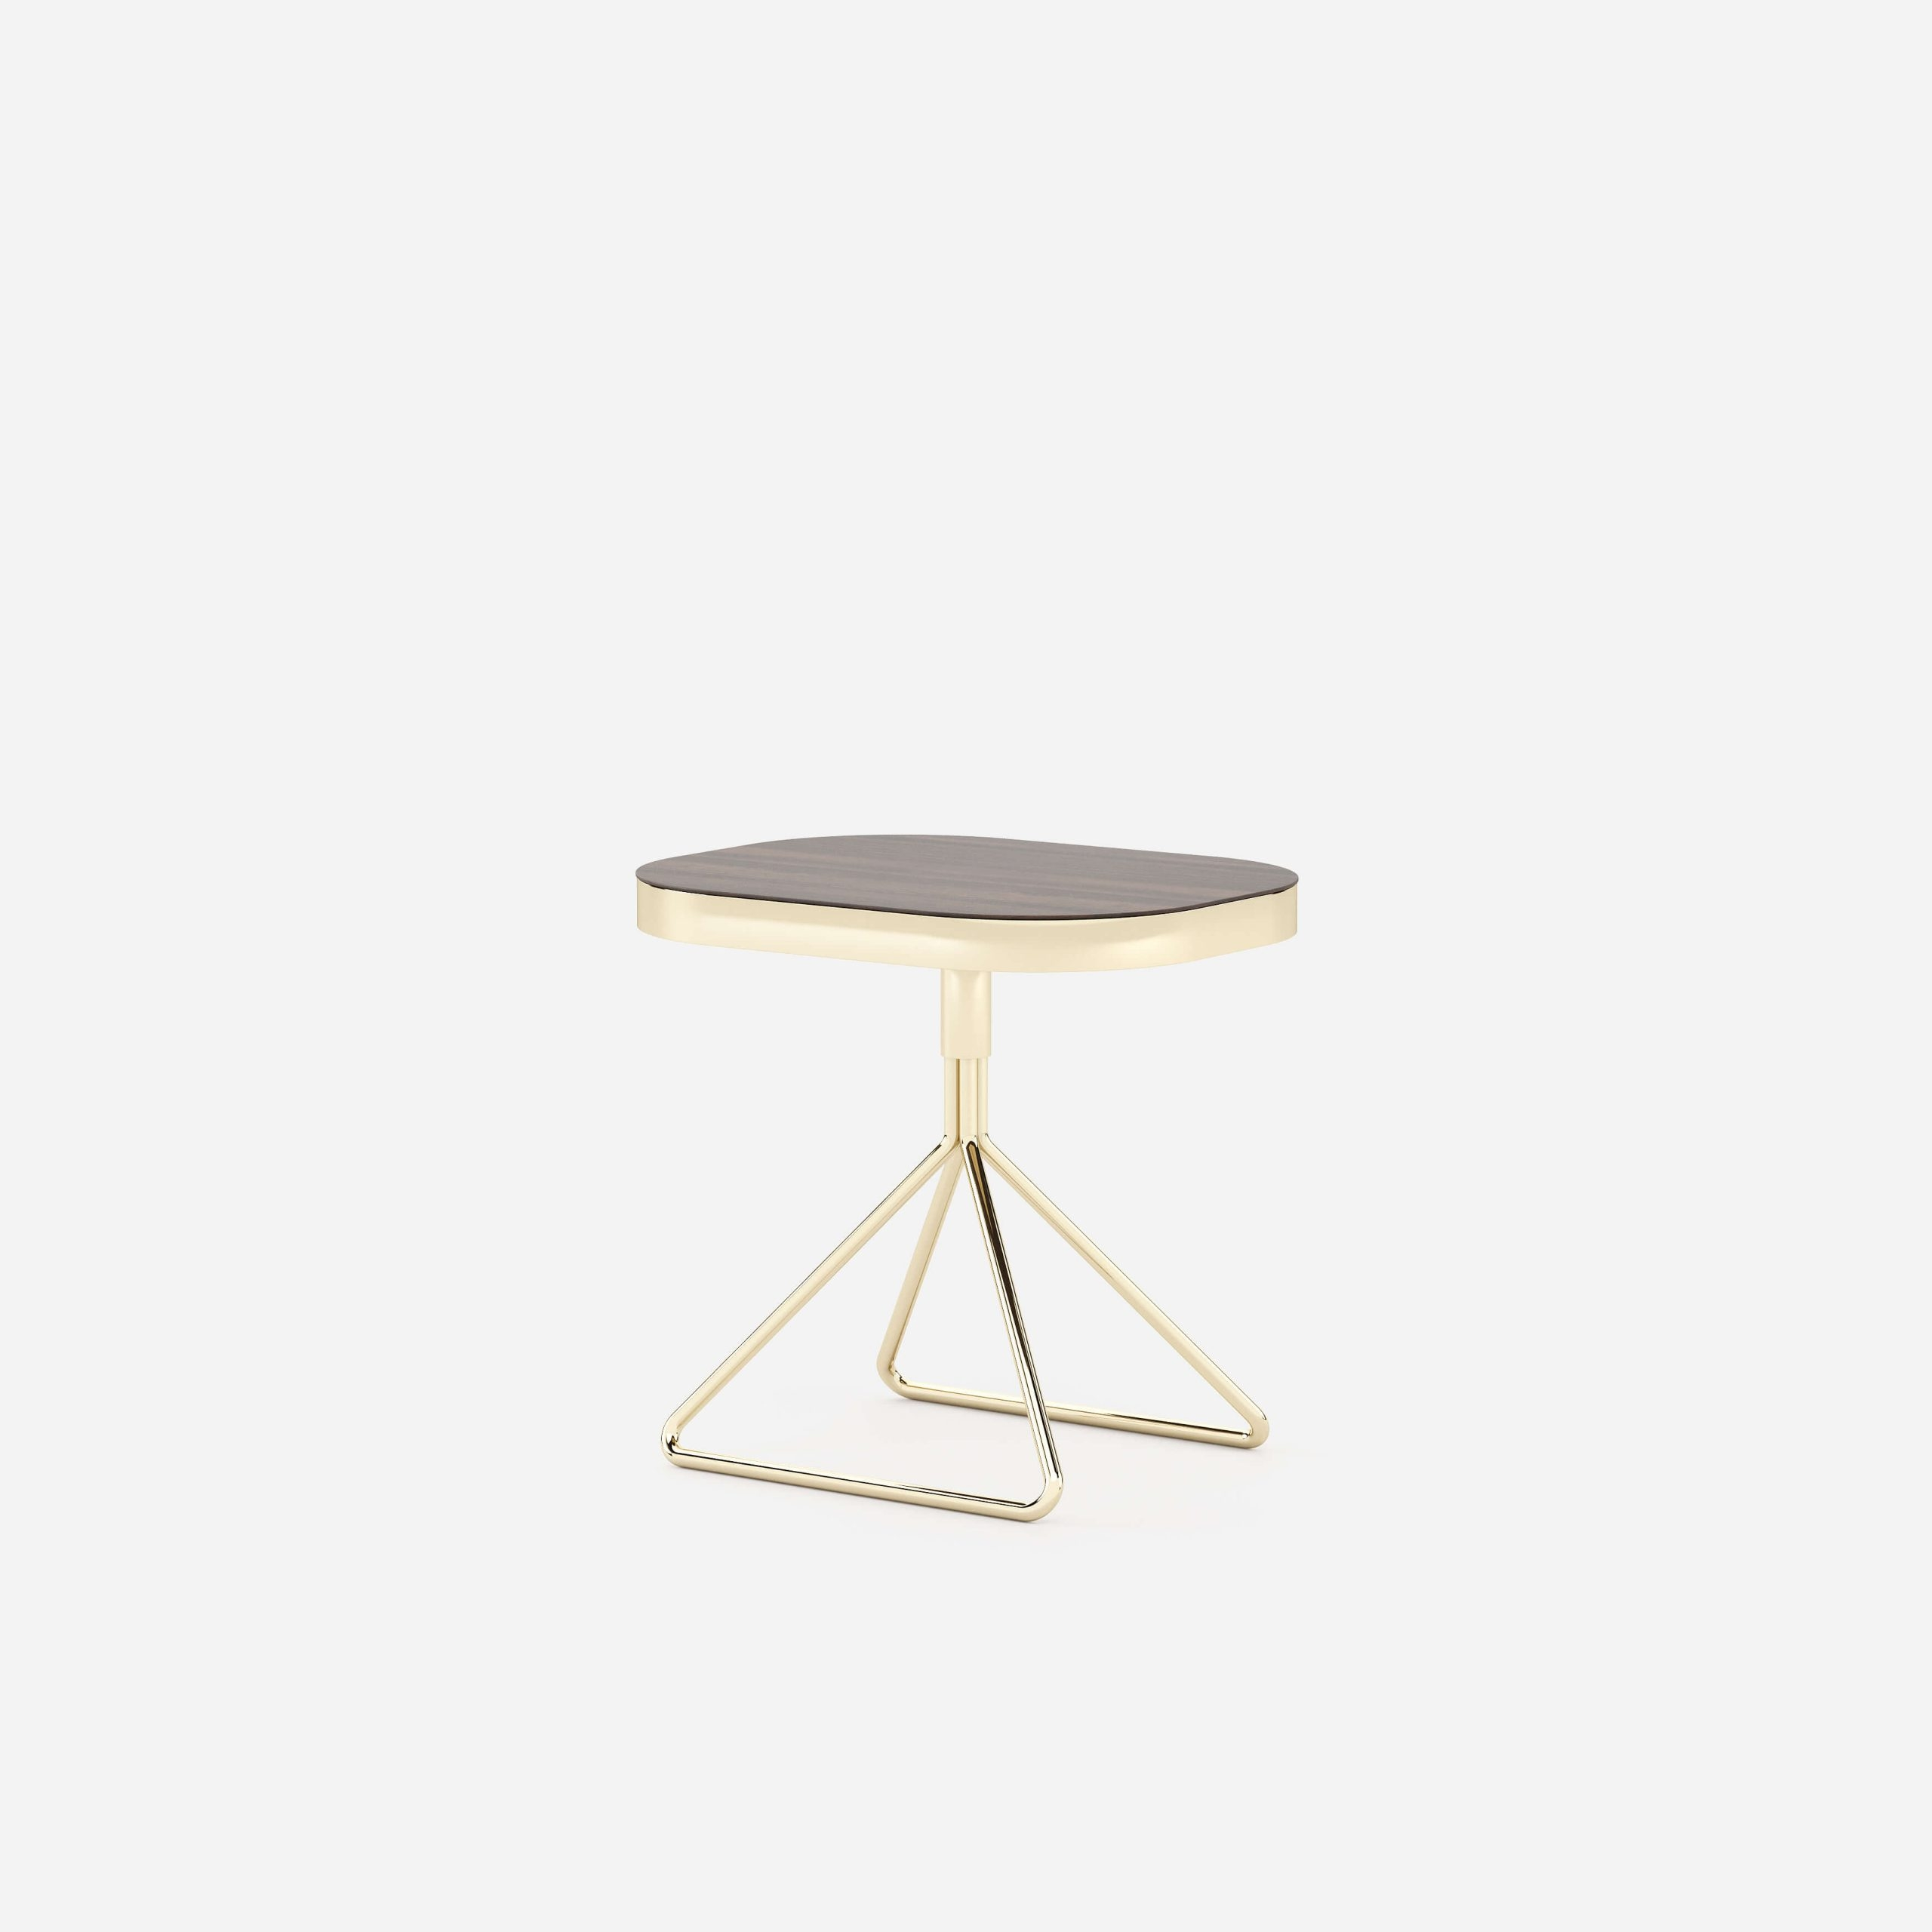 reese-side-table-gold-wood-living-room-contemporary-design-domkapa-1